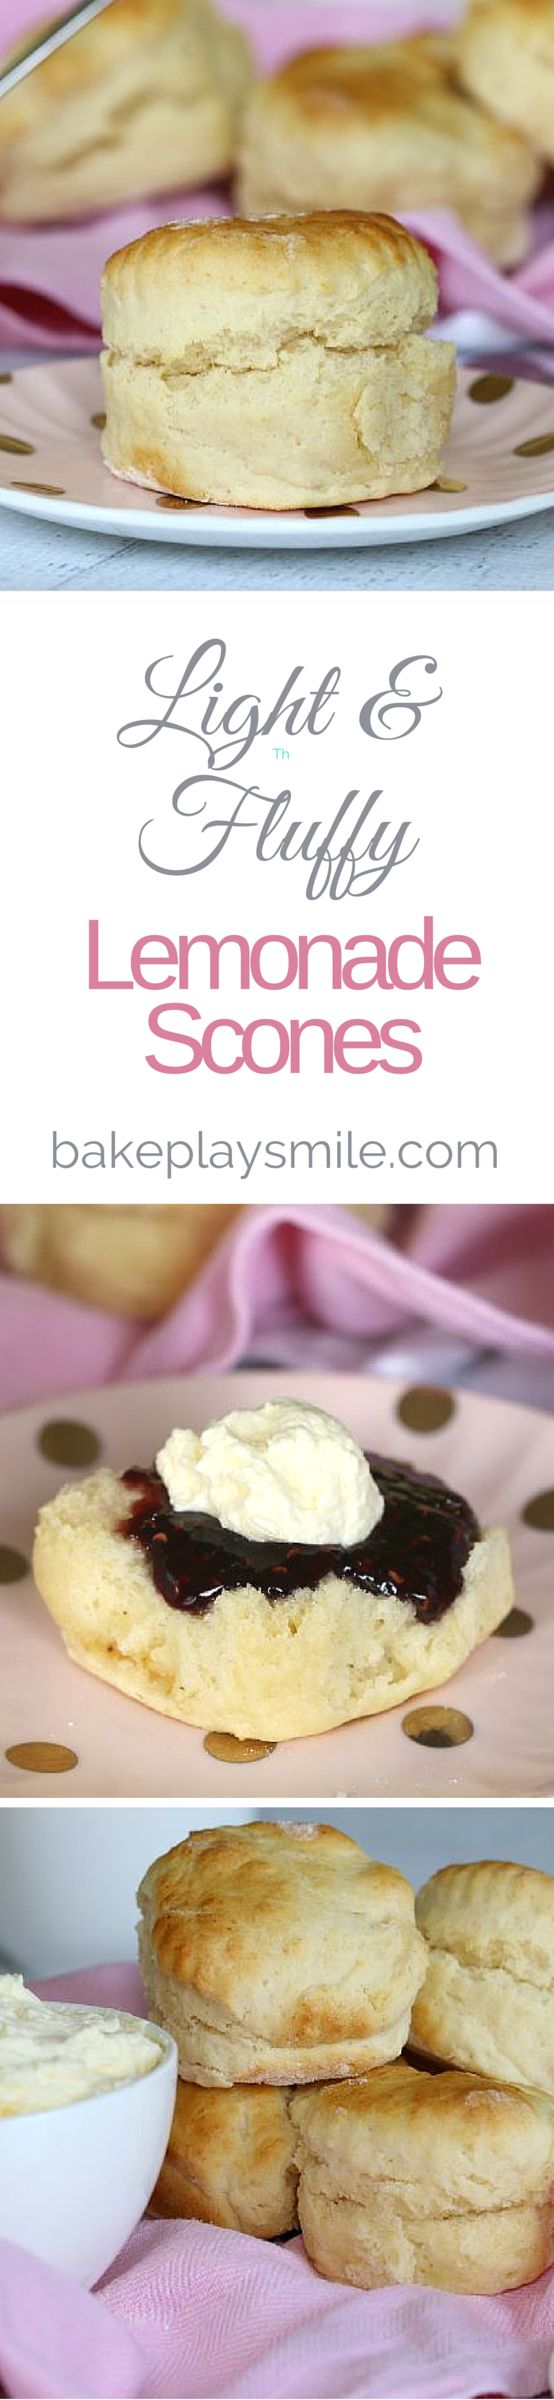 The most perfect (and fool-proof) scones you'll ever make! The lemonade keeps them light and fluffy.